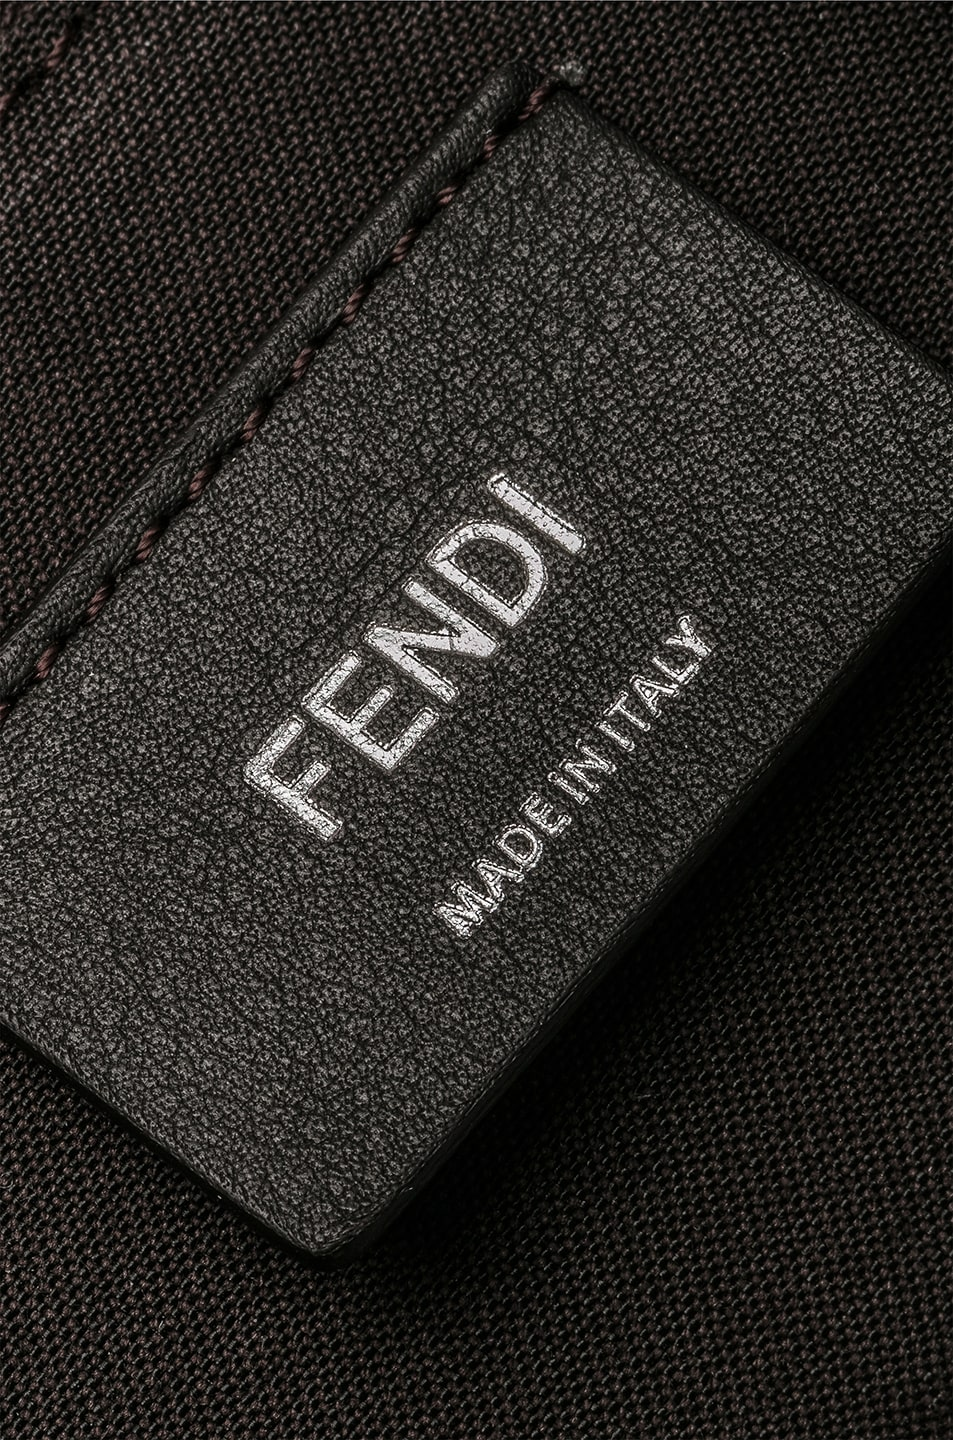 Image 7 of Fendi Medium Crossbody Bag in Chocolate